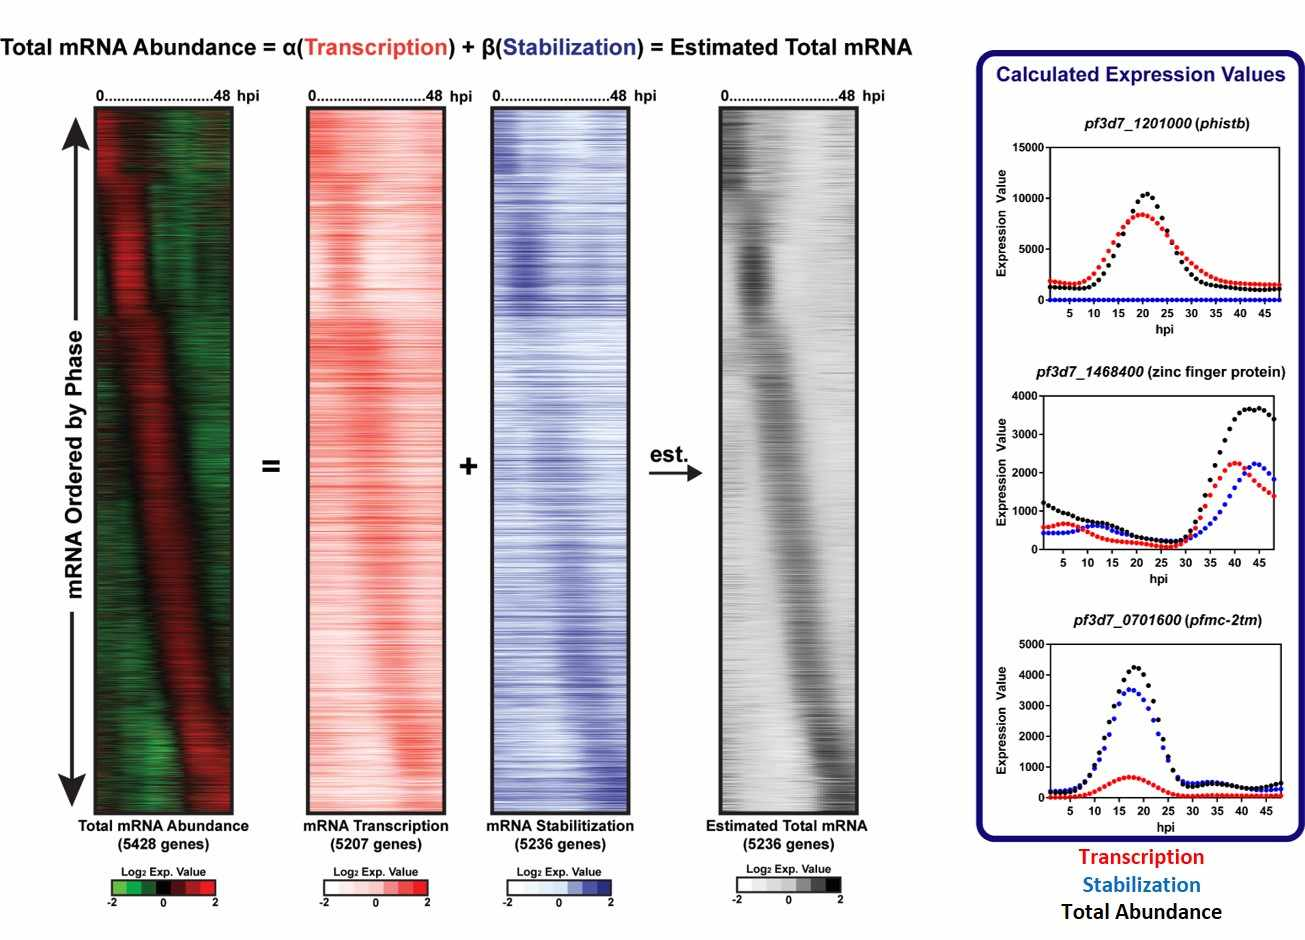 Bioinformatic analysis reveals the contribution of transcription and stabilization to mRNA abundance